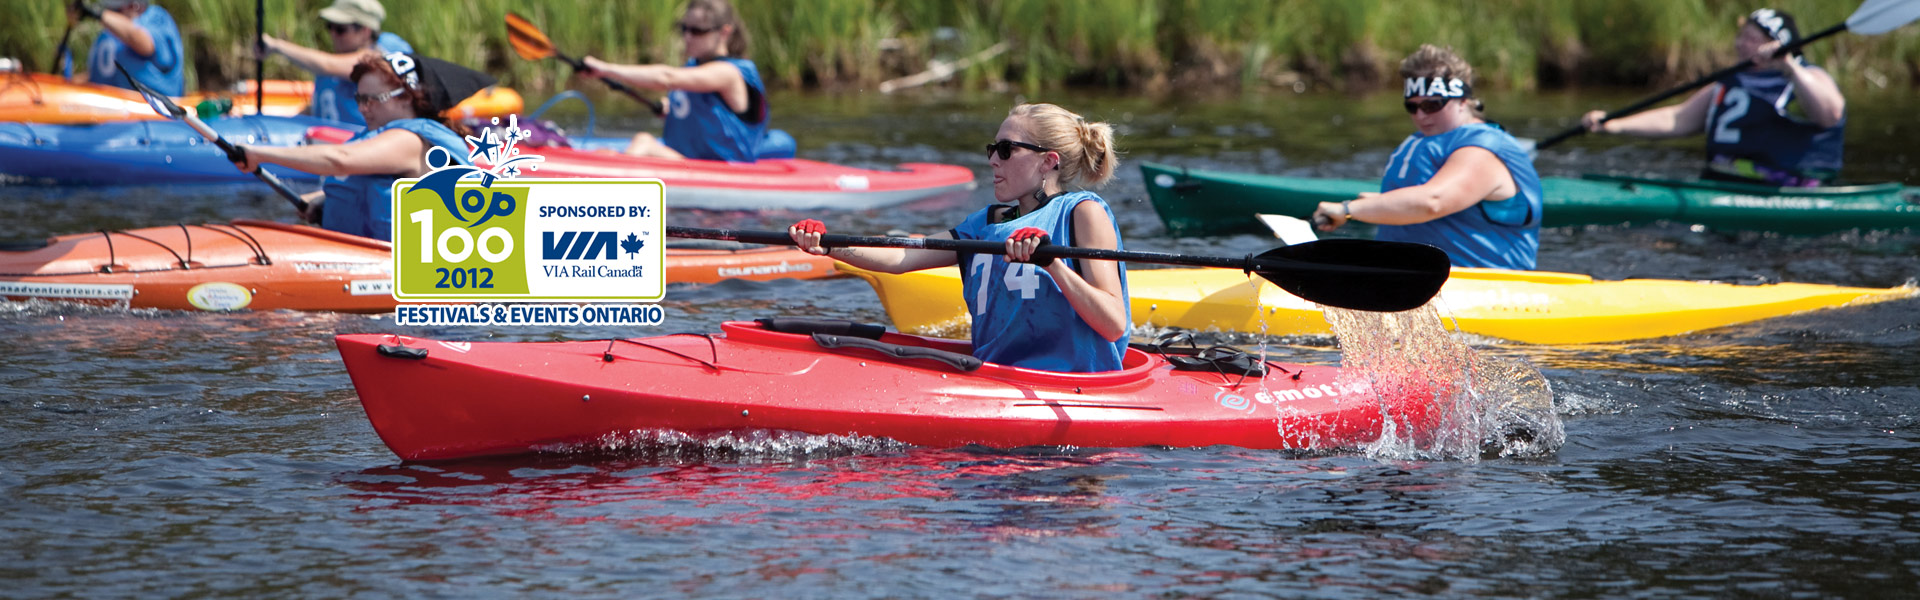 <h2>August 22-24, 2014</h2> Join us for the 6th Annual Great Canadian Kayak Challenge and Festival!